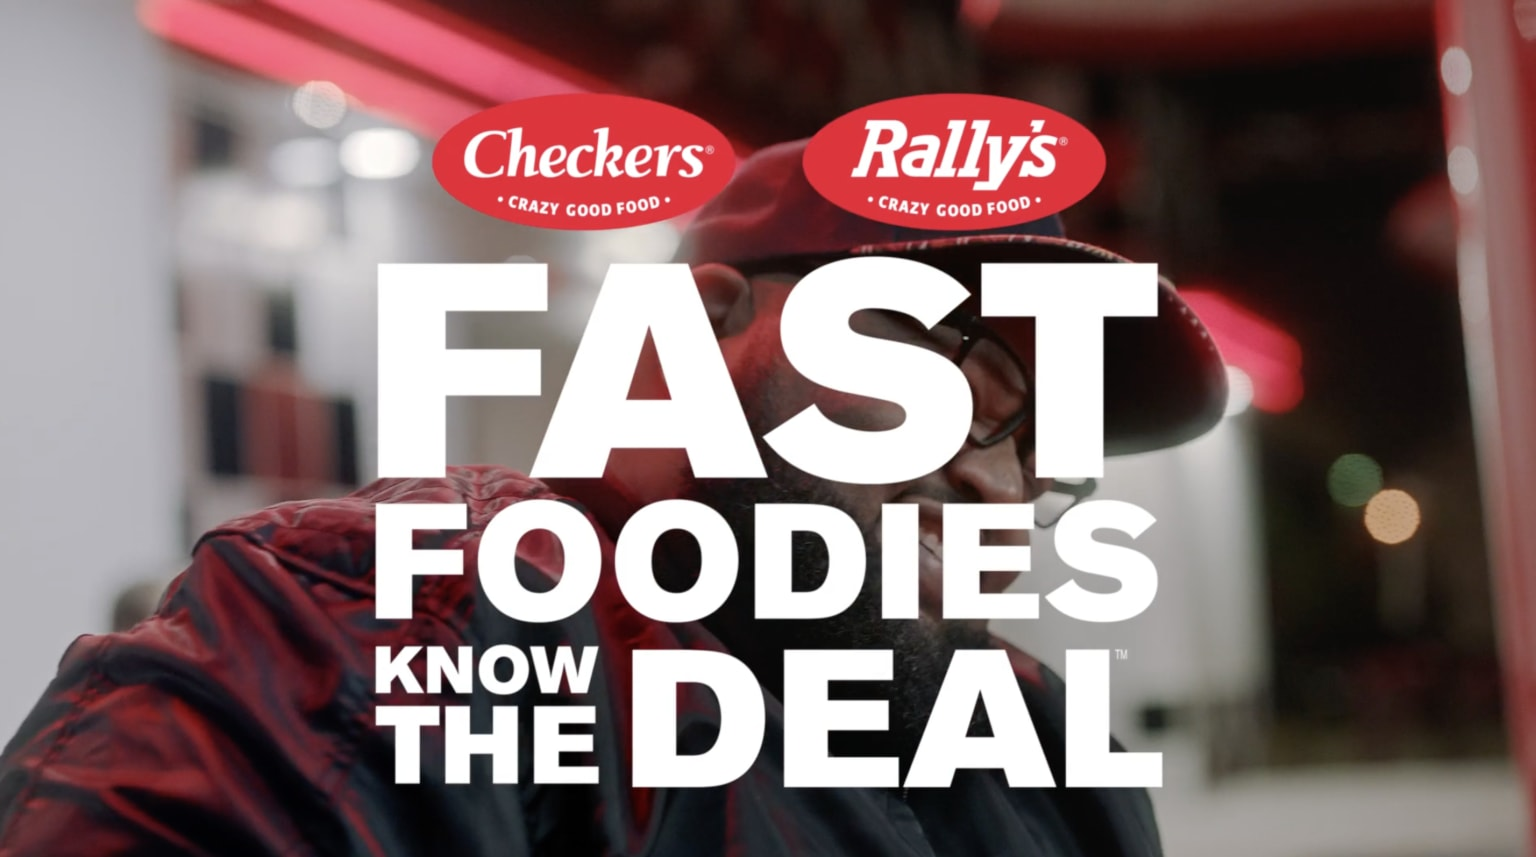 Checkers & Rally's - Fast foodies know the Deal